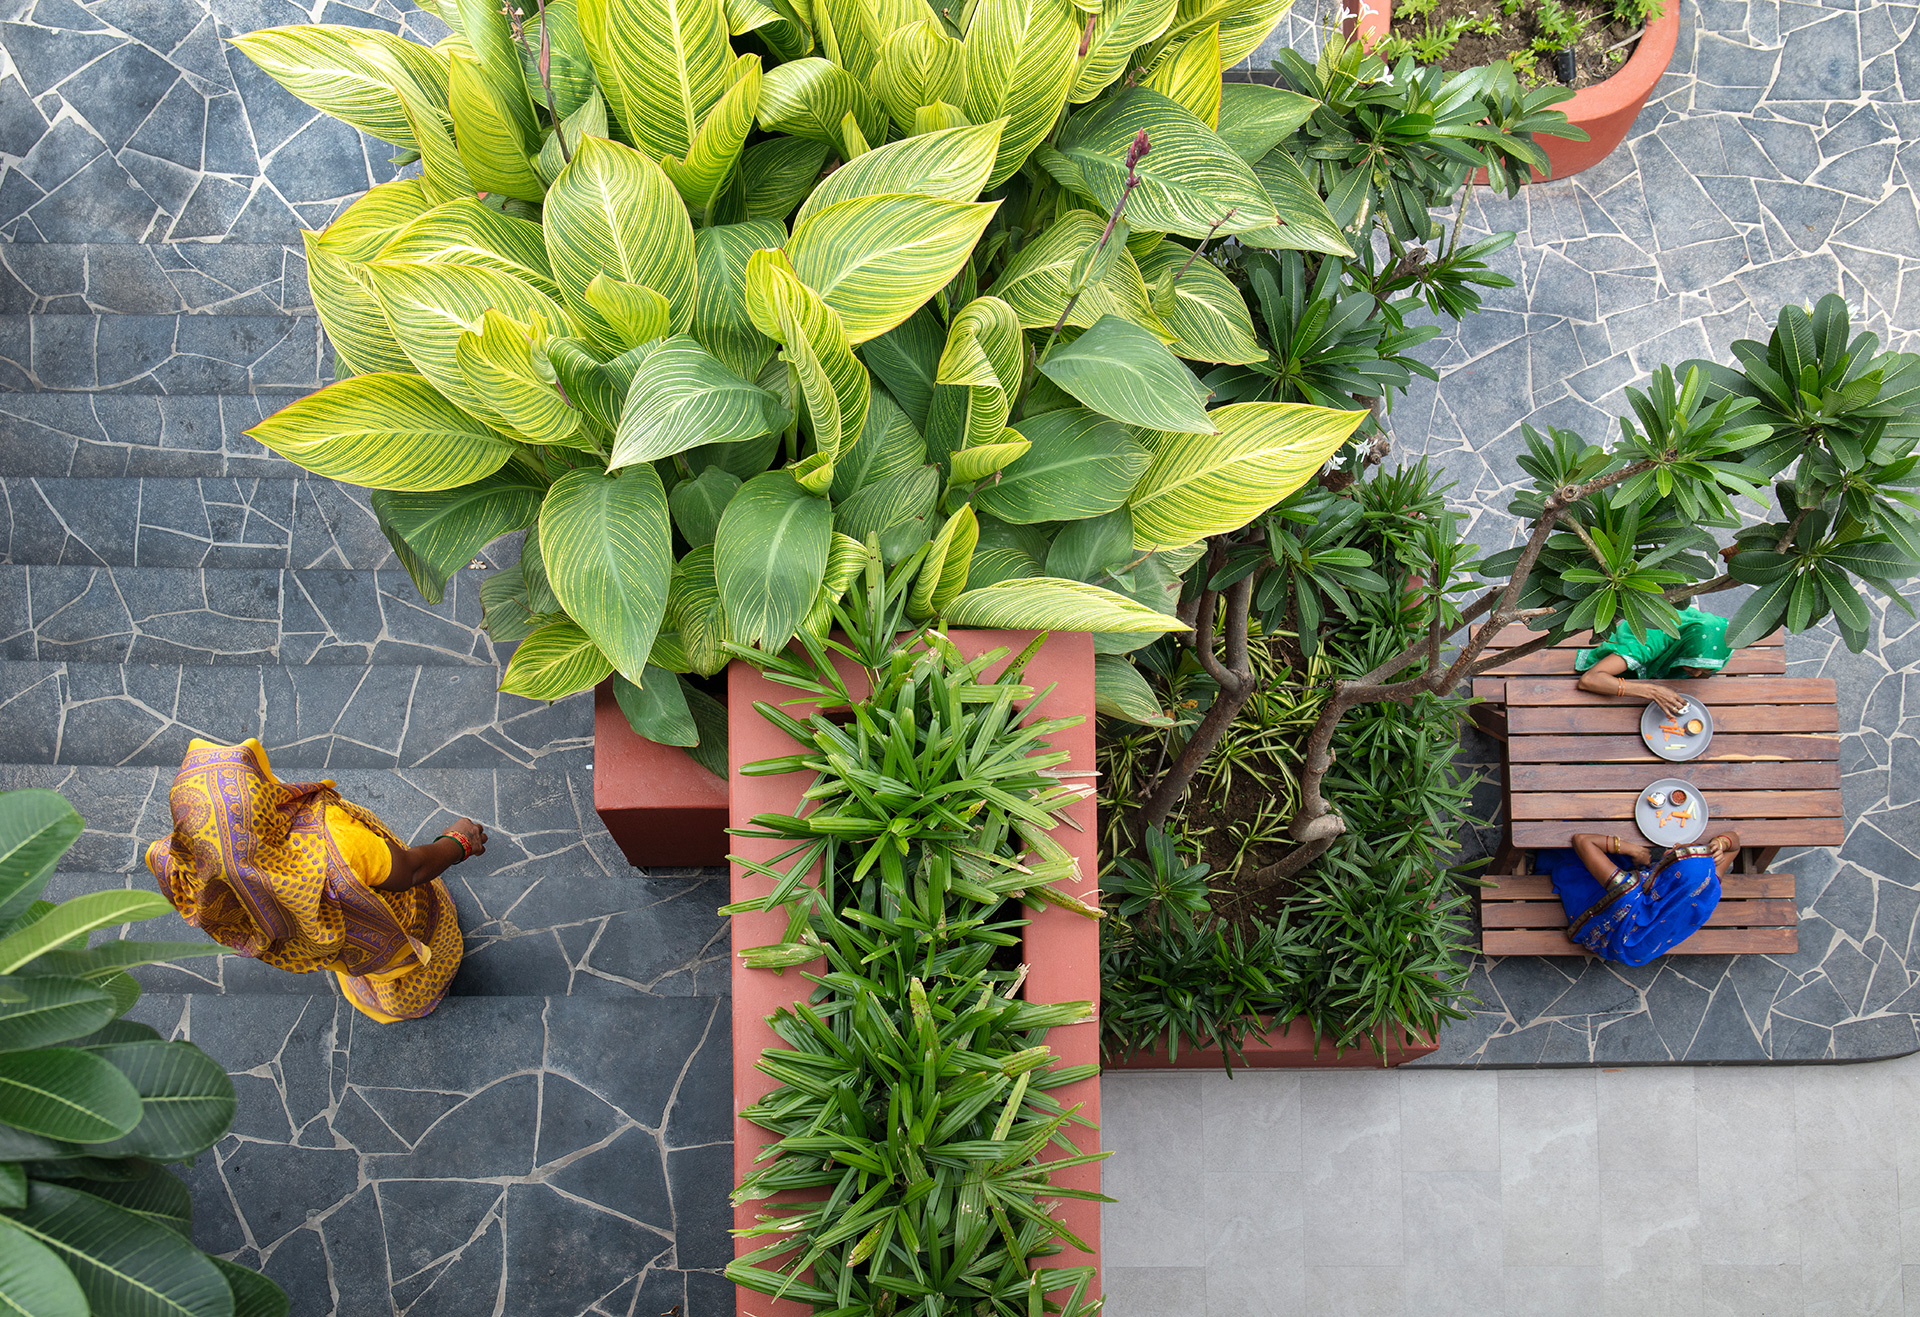 Planters lend a welcoming contrast to the overarching warmth of the central court | The Village Café | Portal 92 | STIRworld